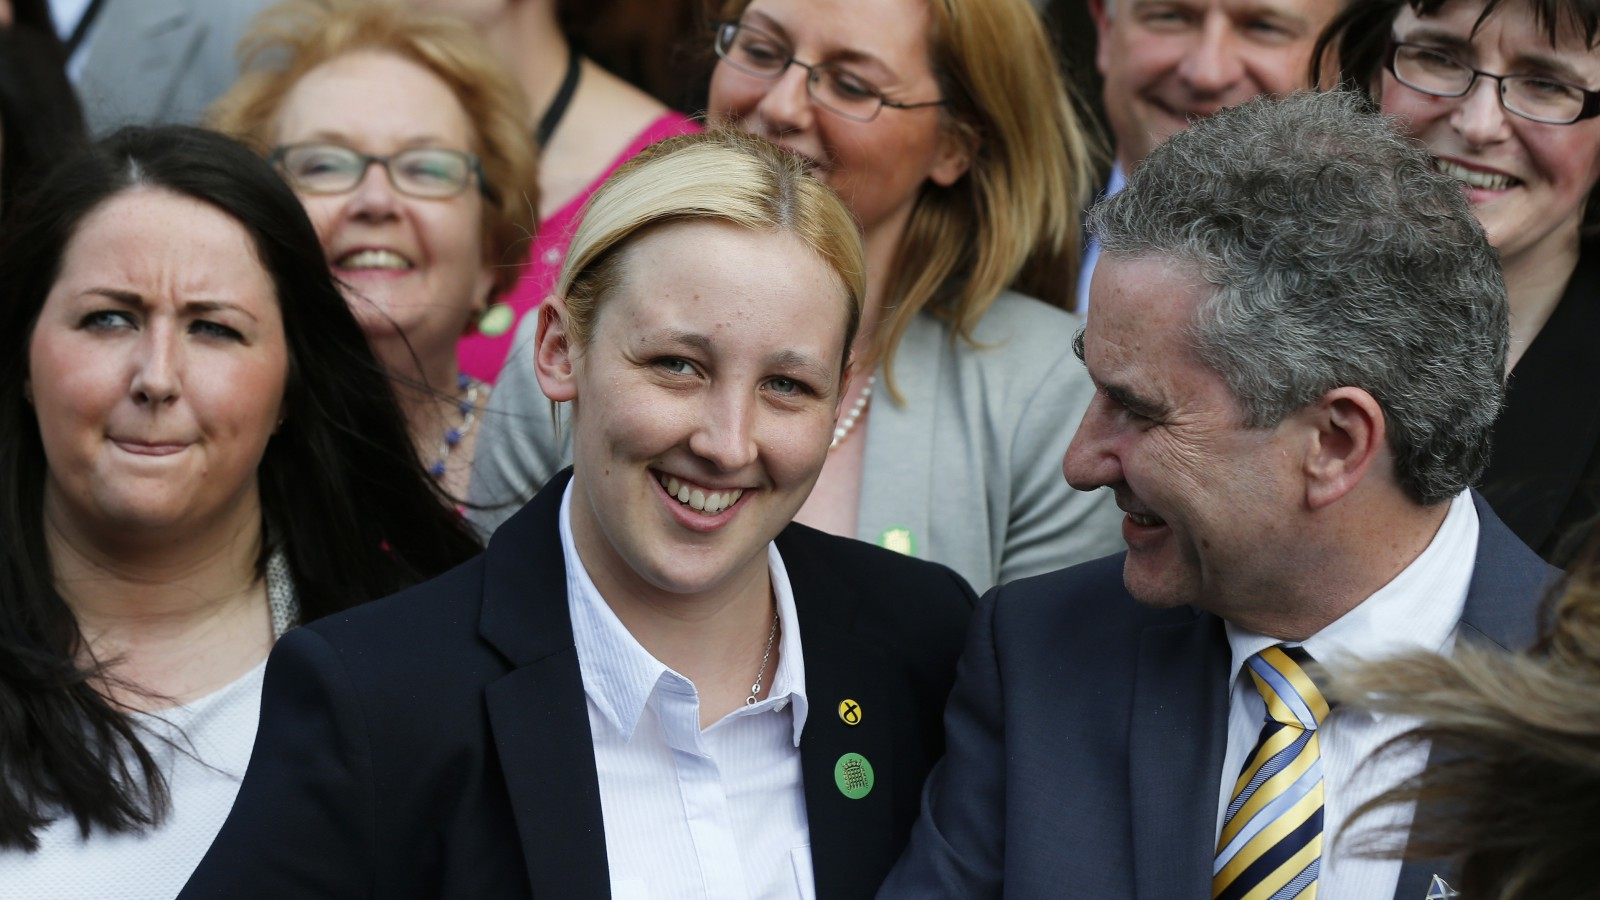 Scottish National Party MP, Mhairi Black (C), poses with other newly-elected SNP MPs, in central London, Britain May 11, 2015.    REUTERS/Suzanne Plunkett  - RTX1CG50